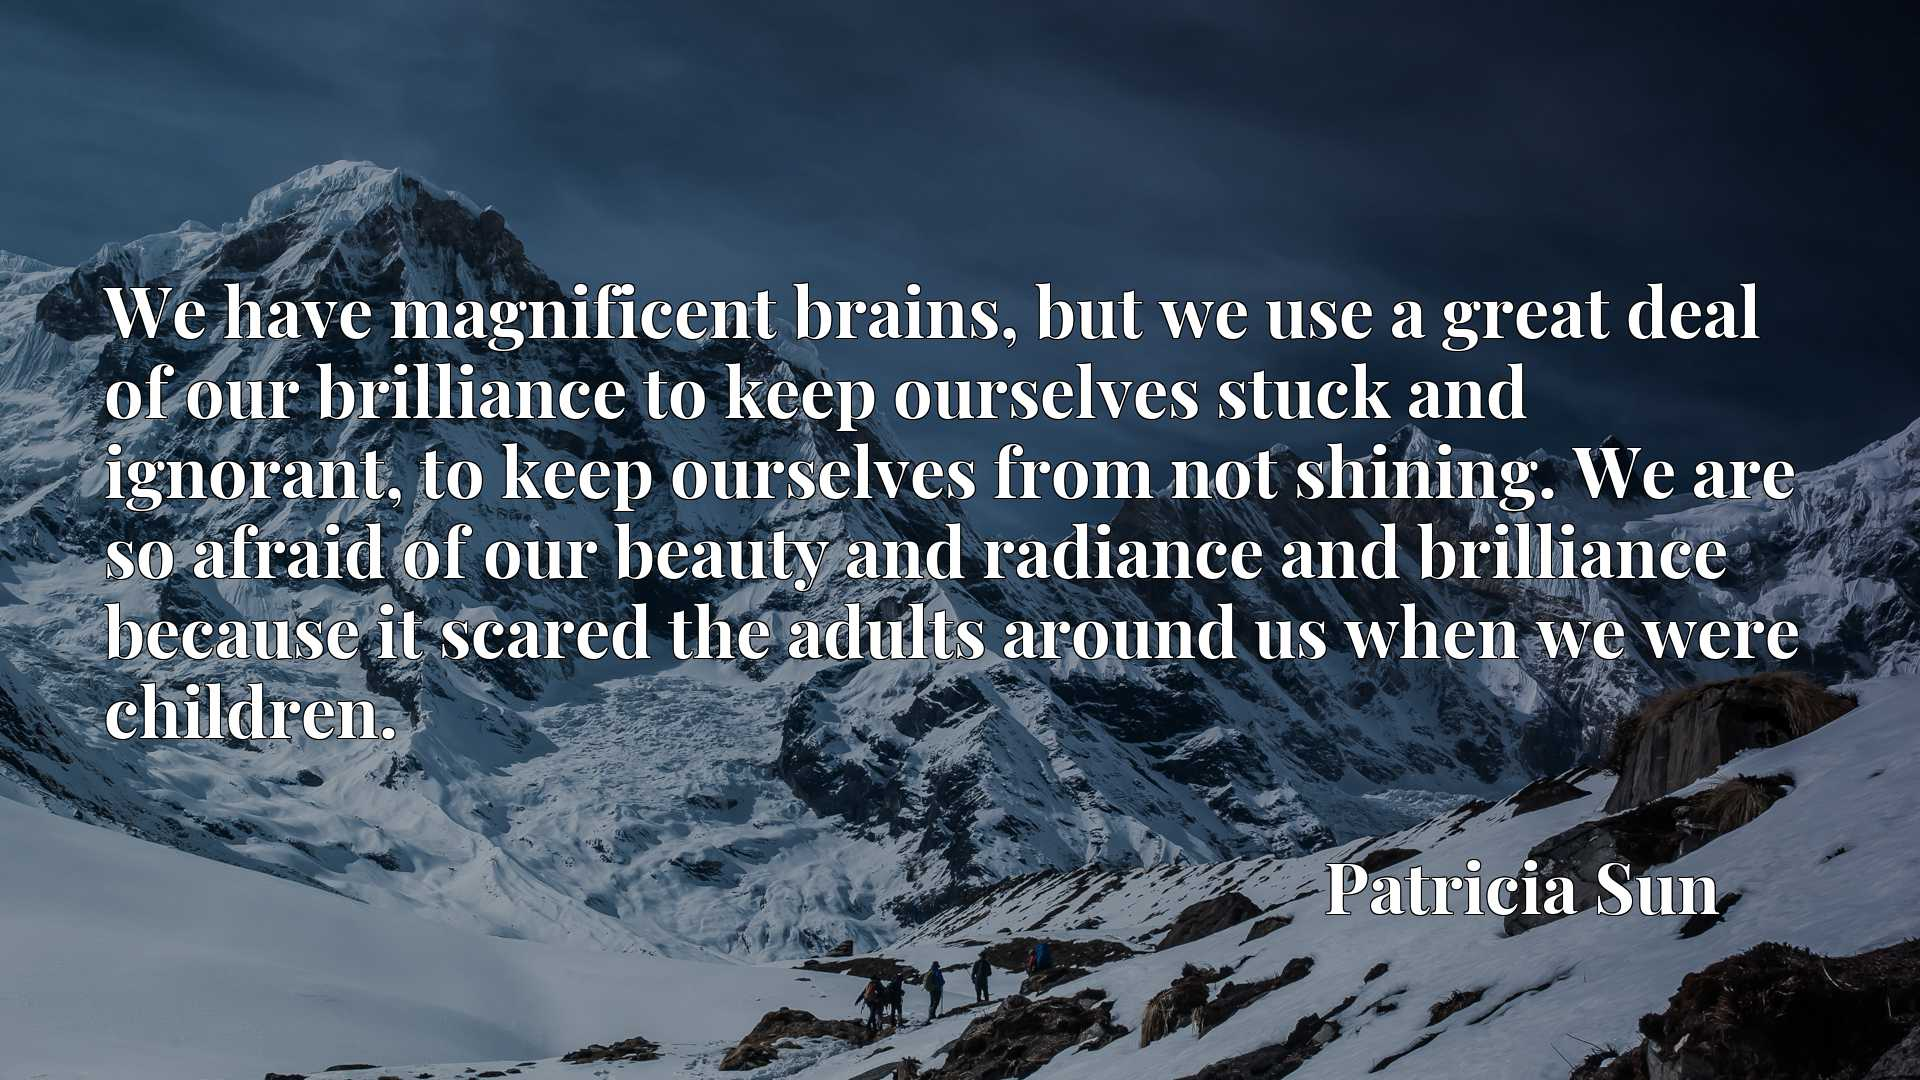 We have magnificent brains, but we use a great deal of our brilliance to keep ourselves stuck and ignorant, to keep ourselves from not shining. We are so afraid of our beauty and radiance and brilliance because it scared the adults around us when we were children.